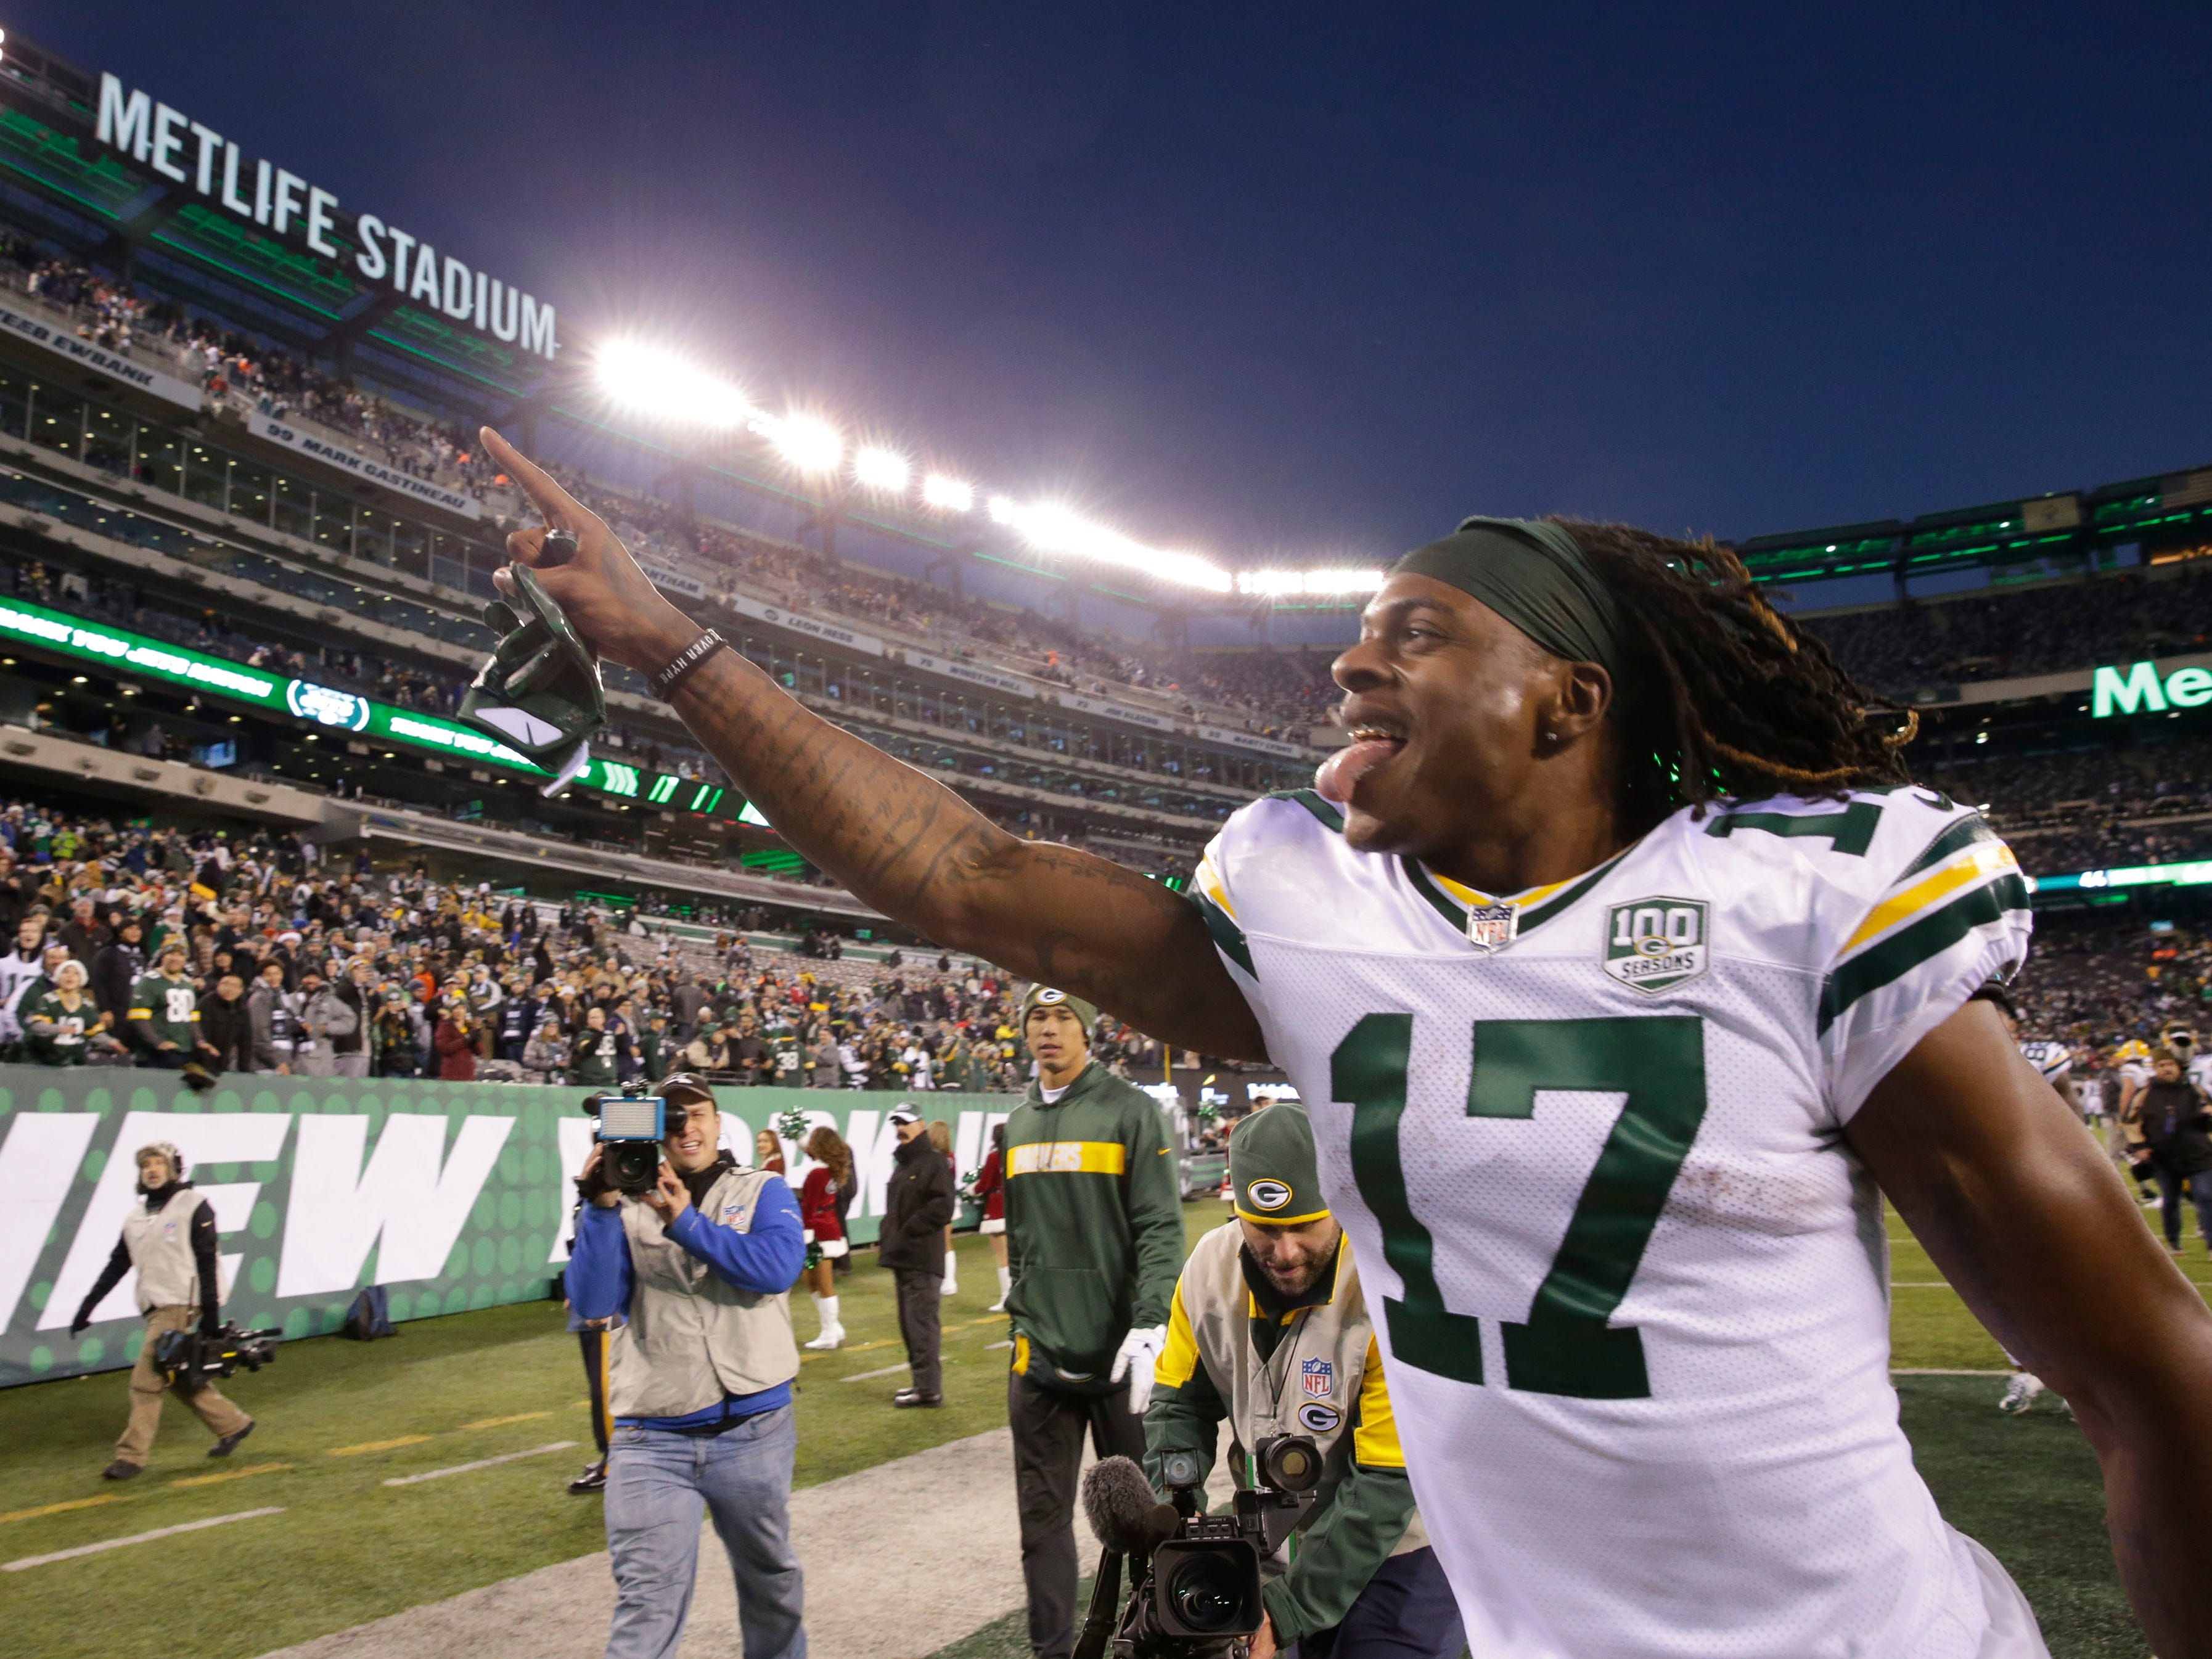 Green Bay Packers' Davante Adams responds to the fans after the Packers 44-38 overtime win against the New York Jets at MetLife Stadium Sunday, Dec. 23, 2018, in East Rutherford.